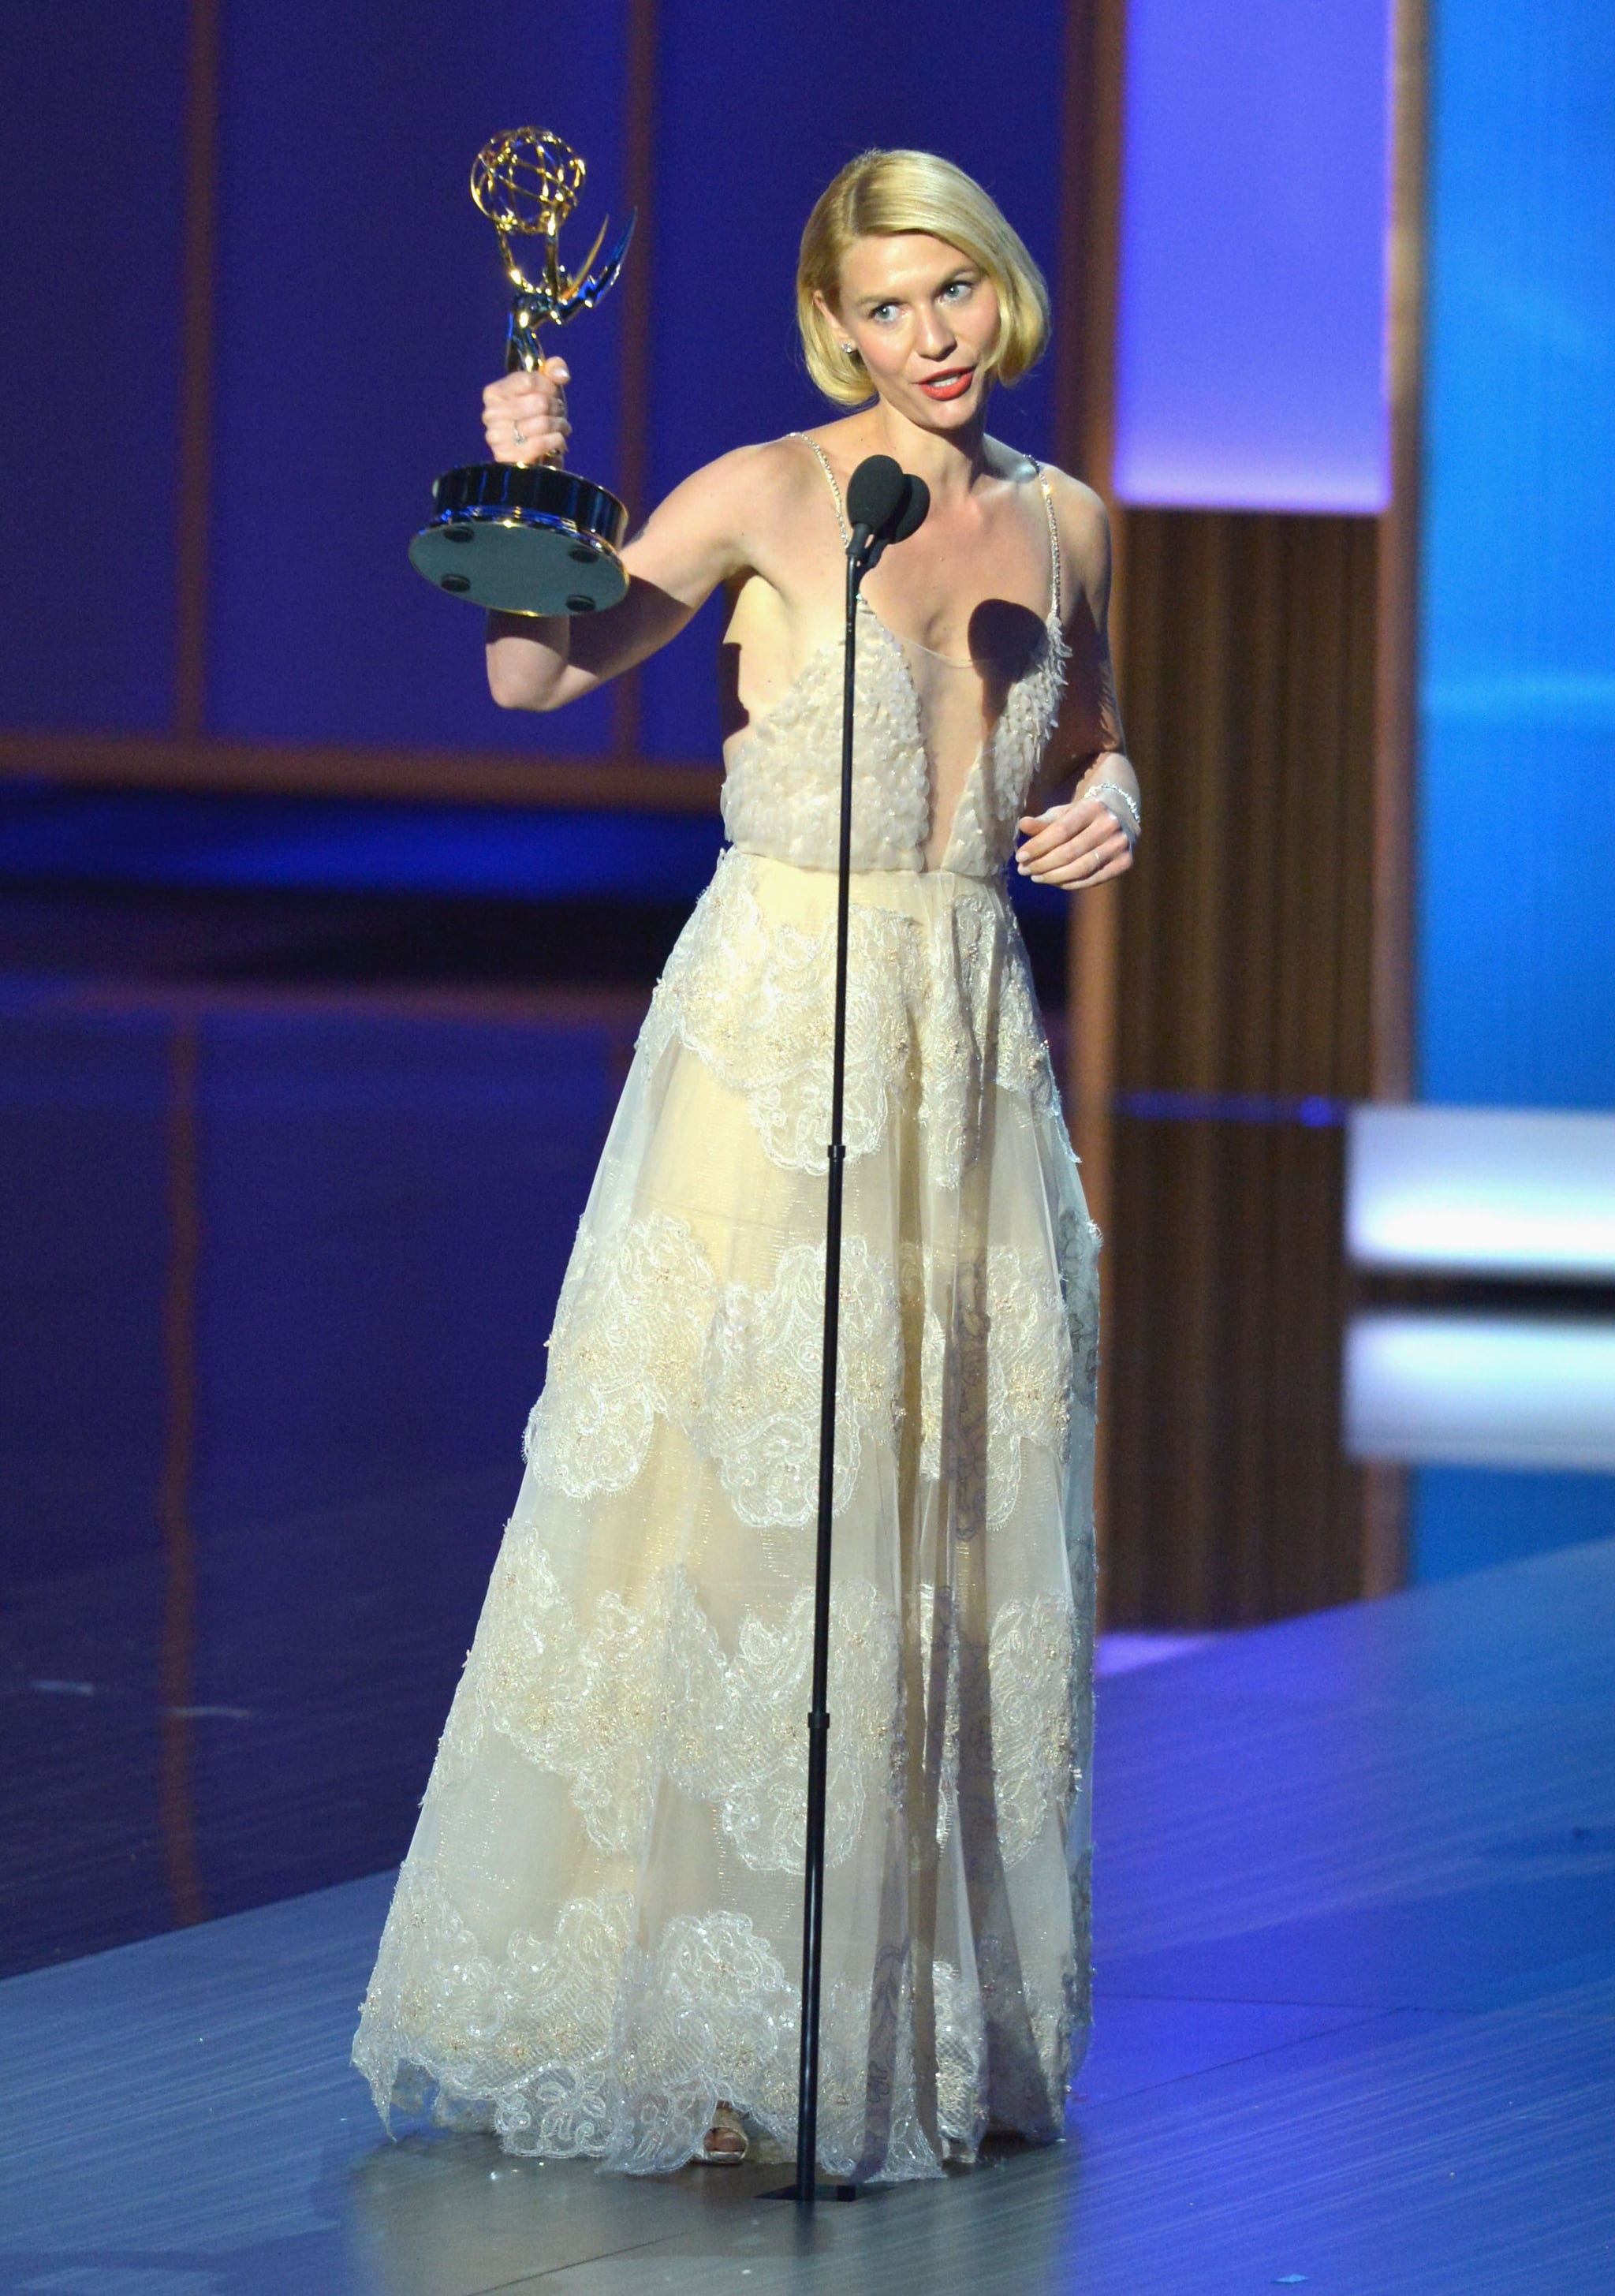 Claire Danes won the award for leading actress in a drama for Homeland.